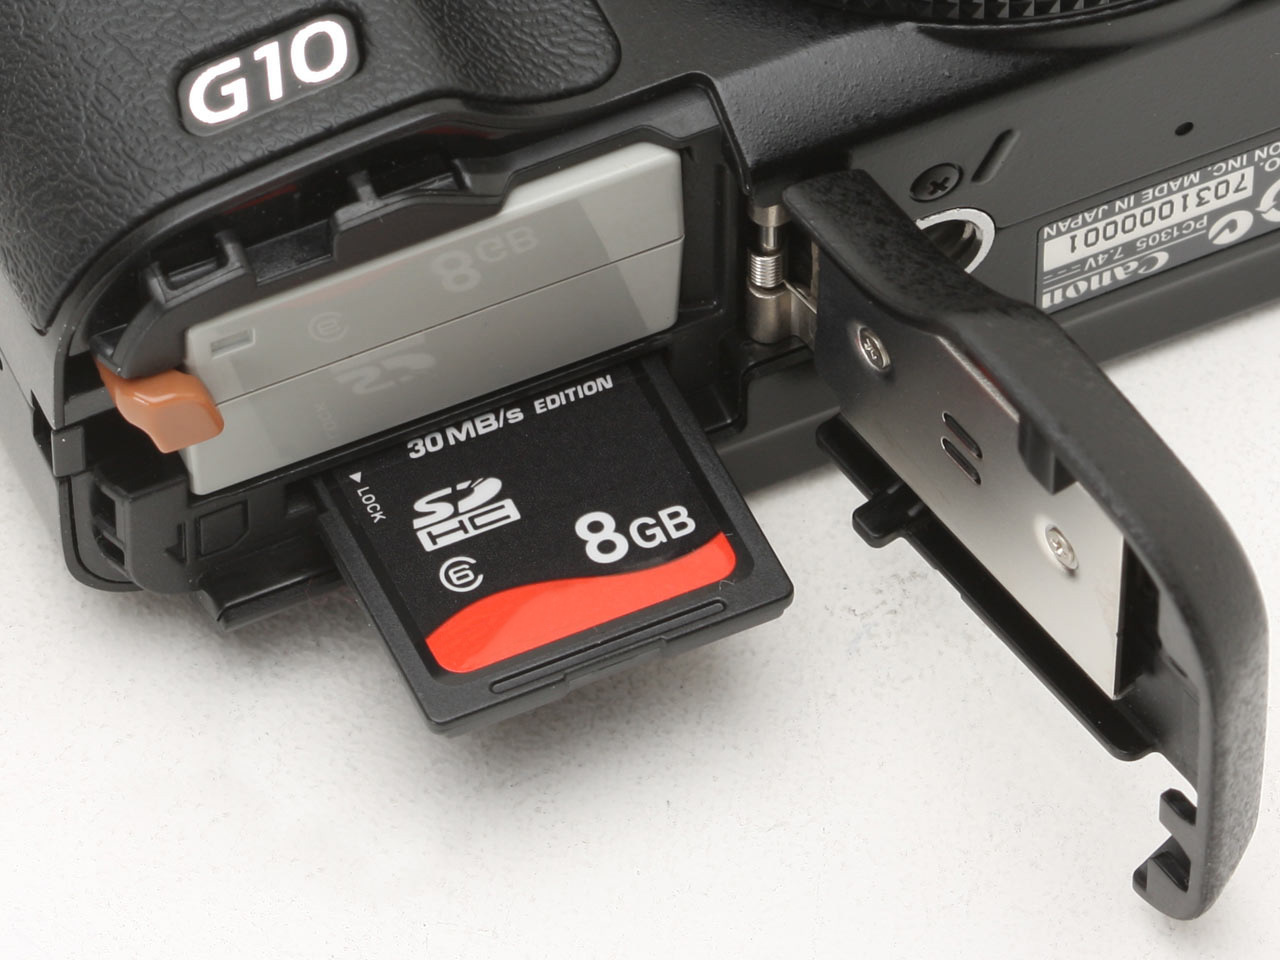 How to recover pics from broken sd card